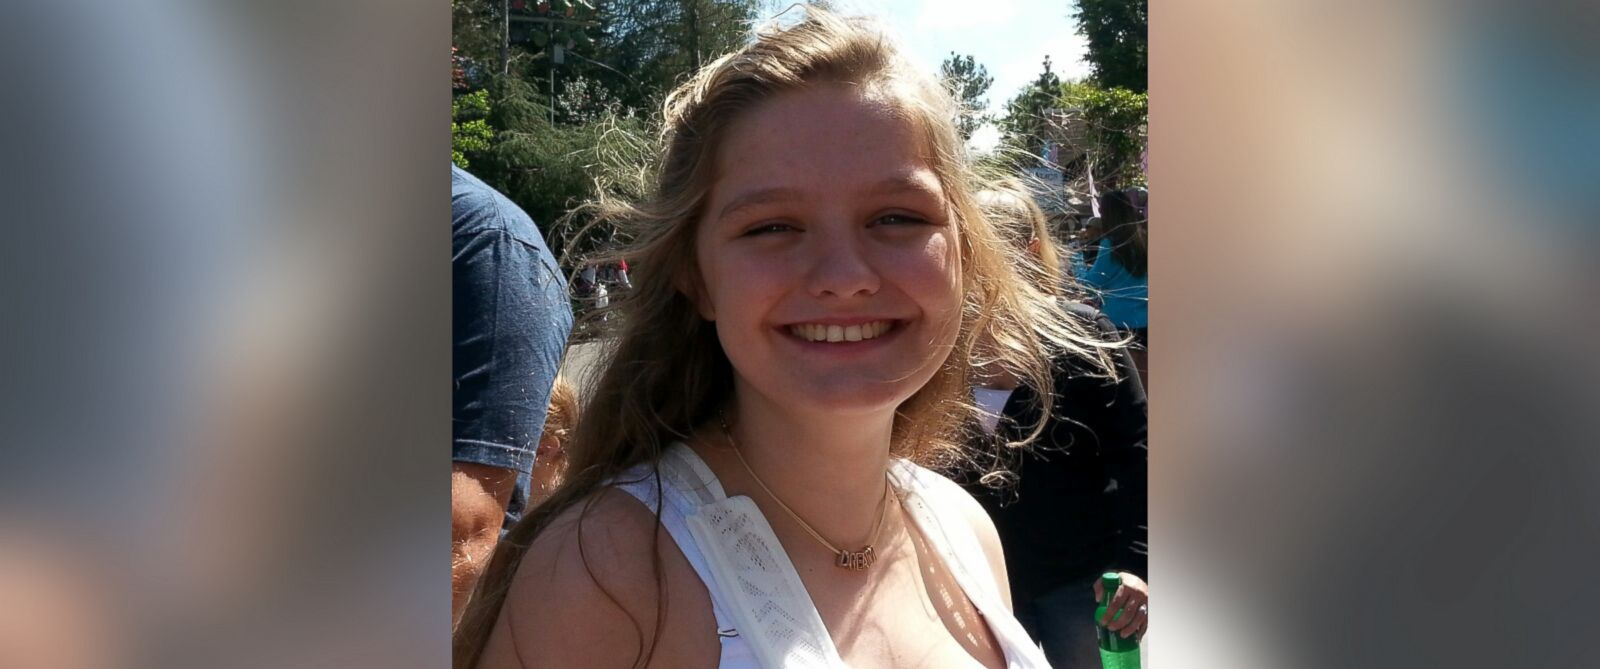 PHOTO: Donna Beegles daughter, 15-year-old Juliette.